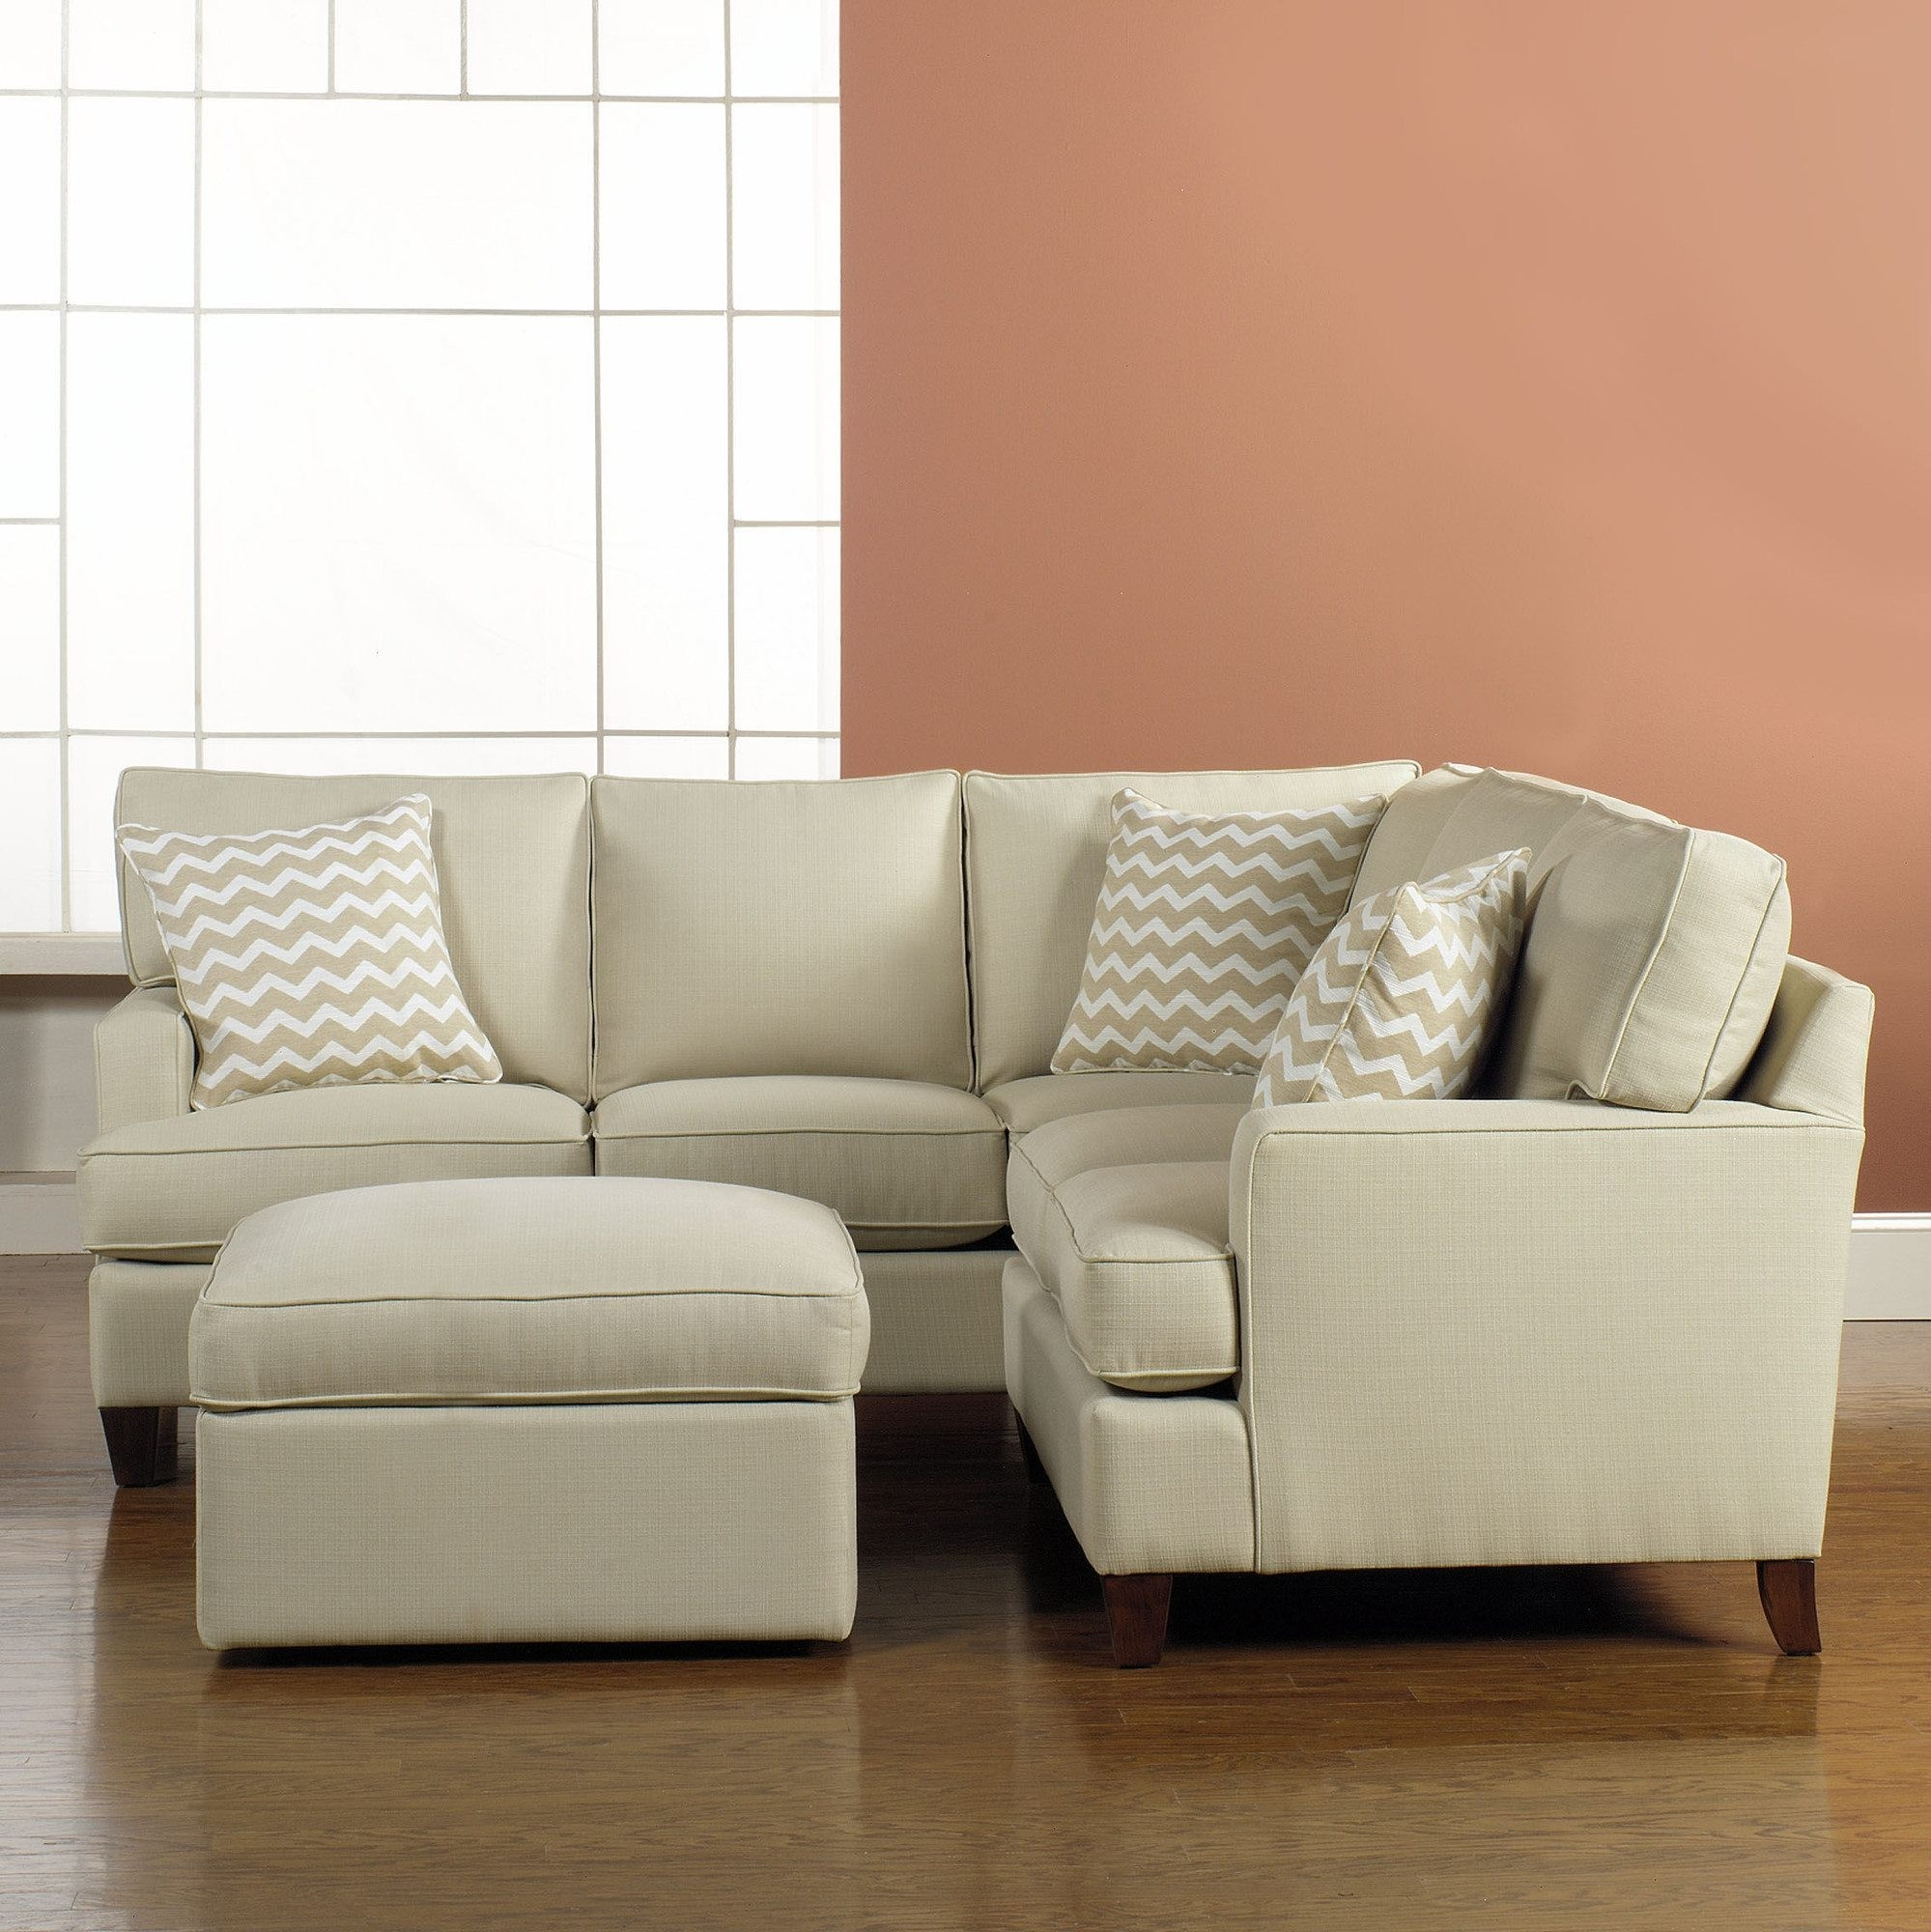 Small Sectional sofas Unique Great Sectional sofa for Small Spaces In Living Room sofa Online